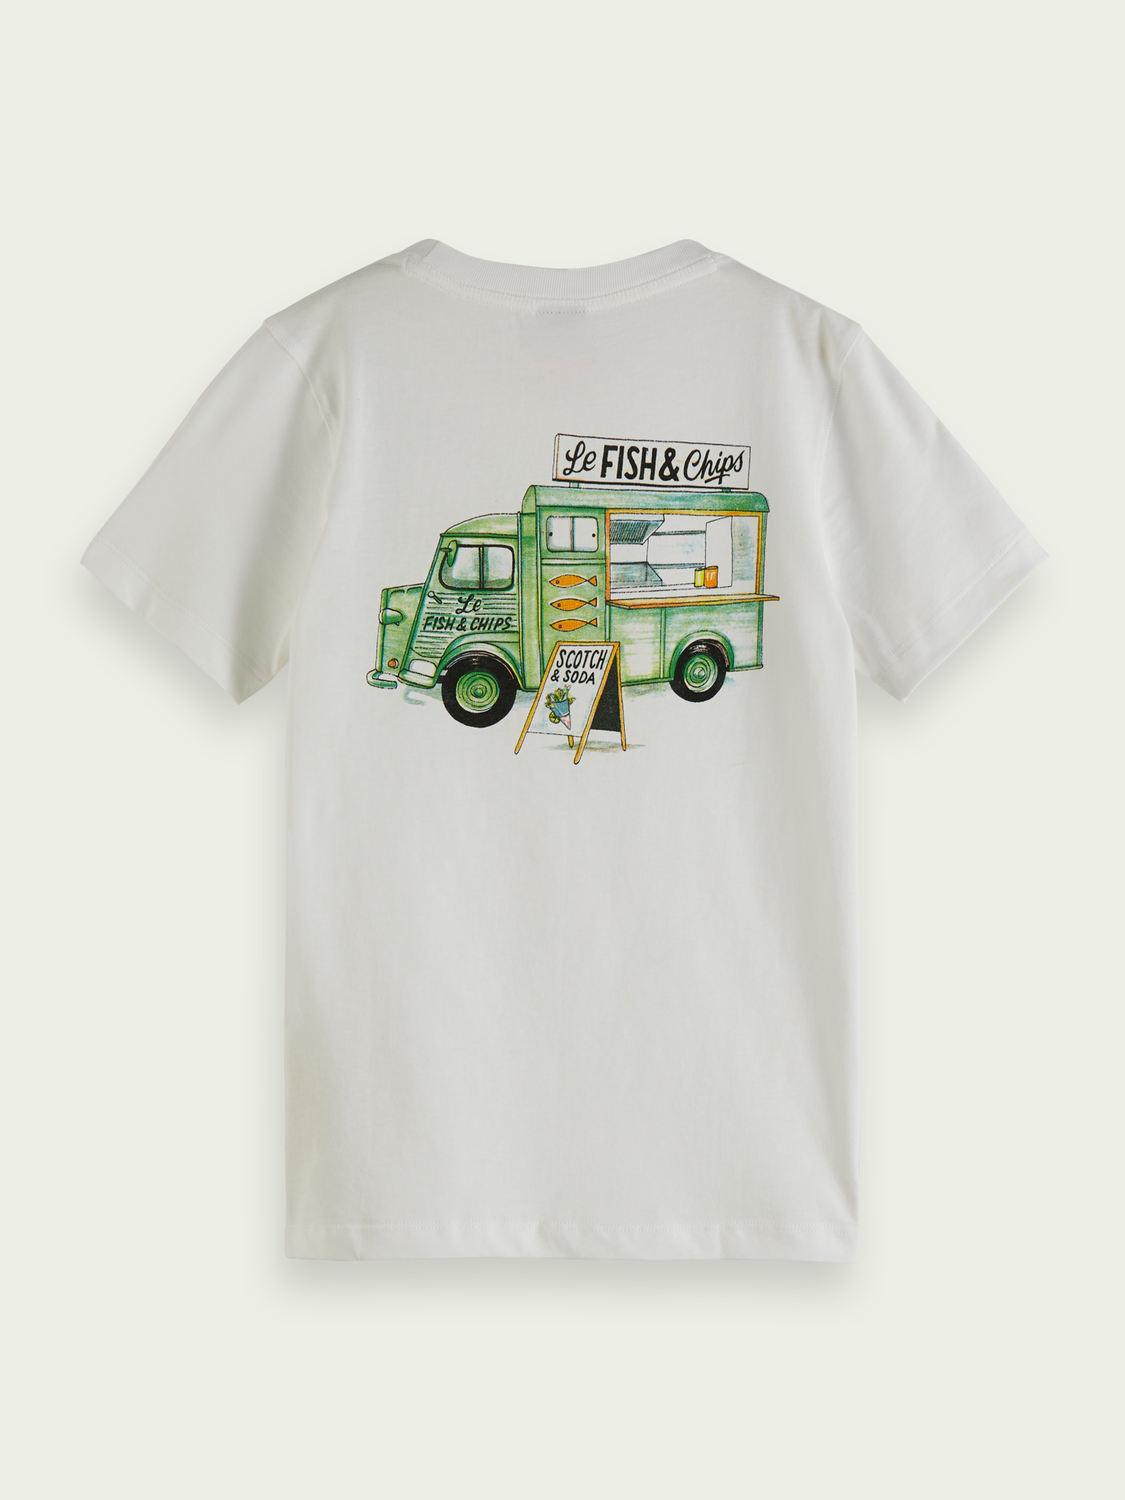 Kids Organic cotton T-shirt with fish and chips artwork